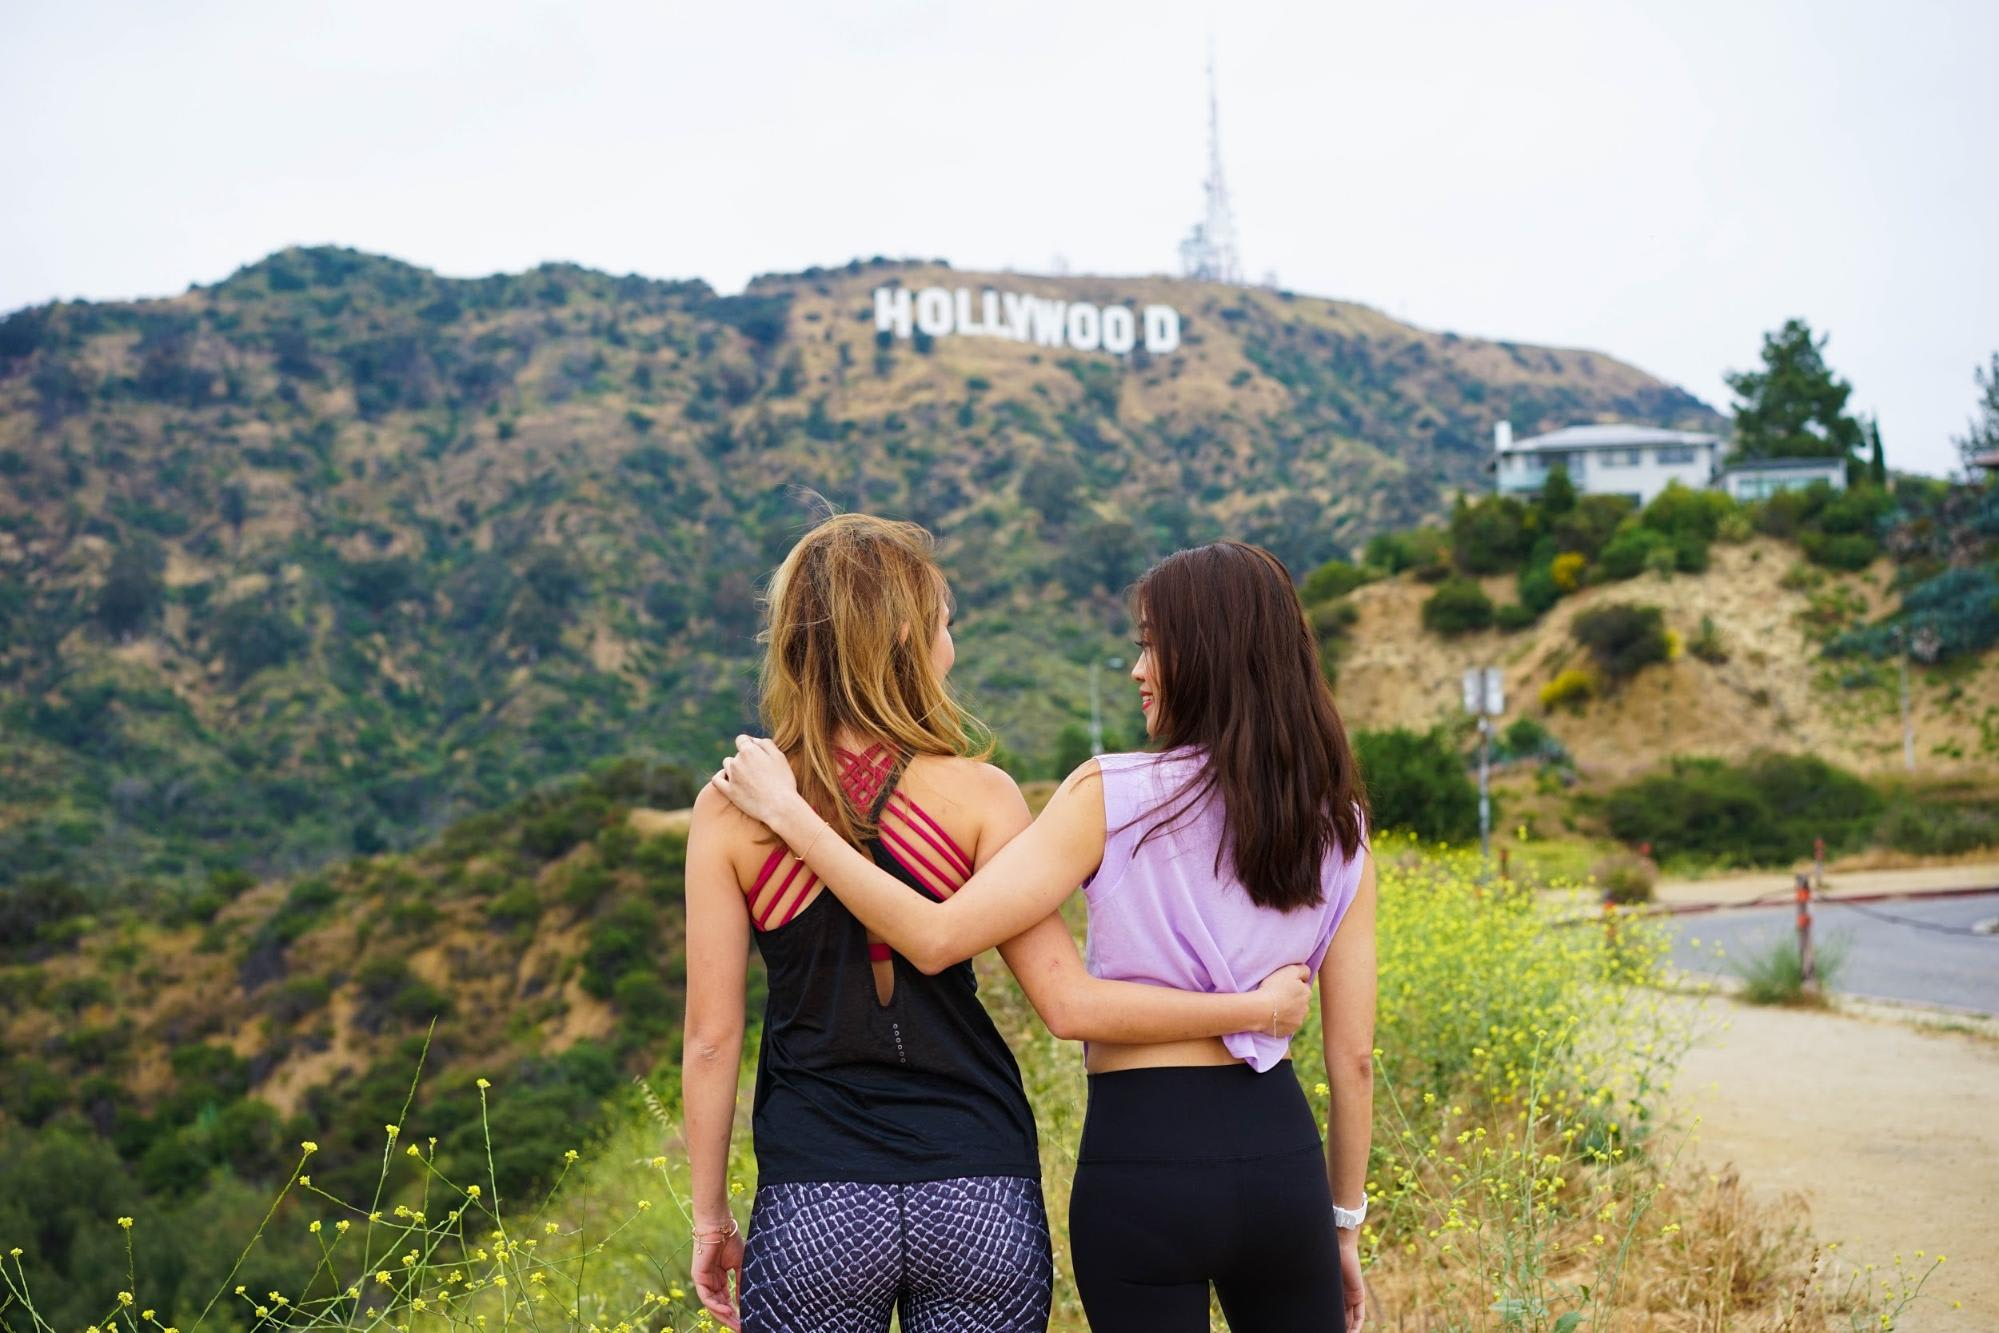 Taking a photo with the Hollywood Sign